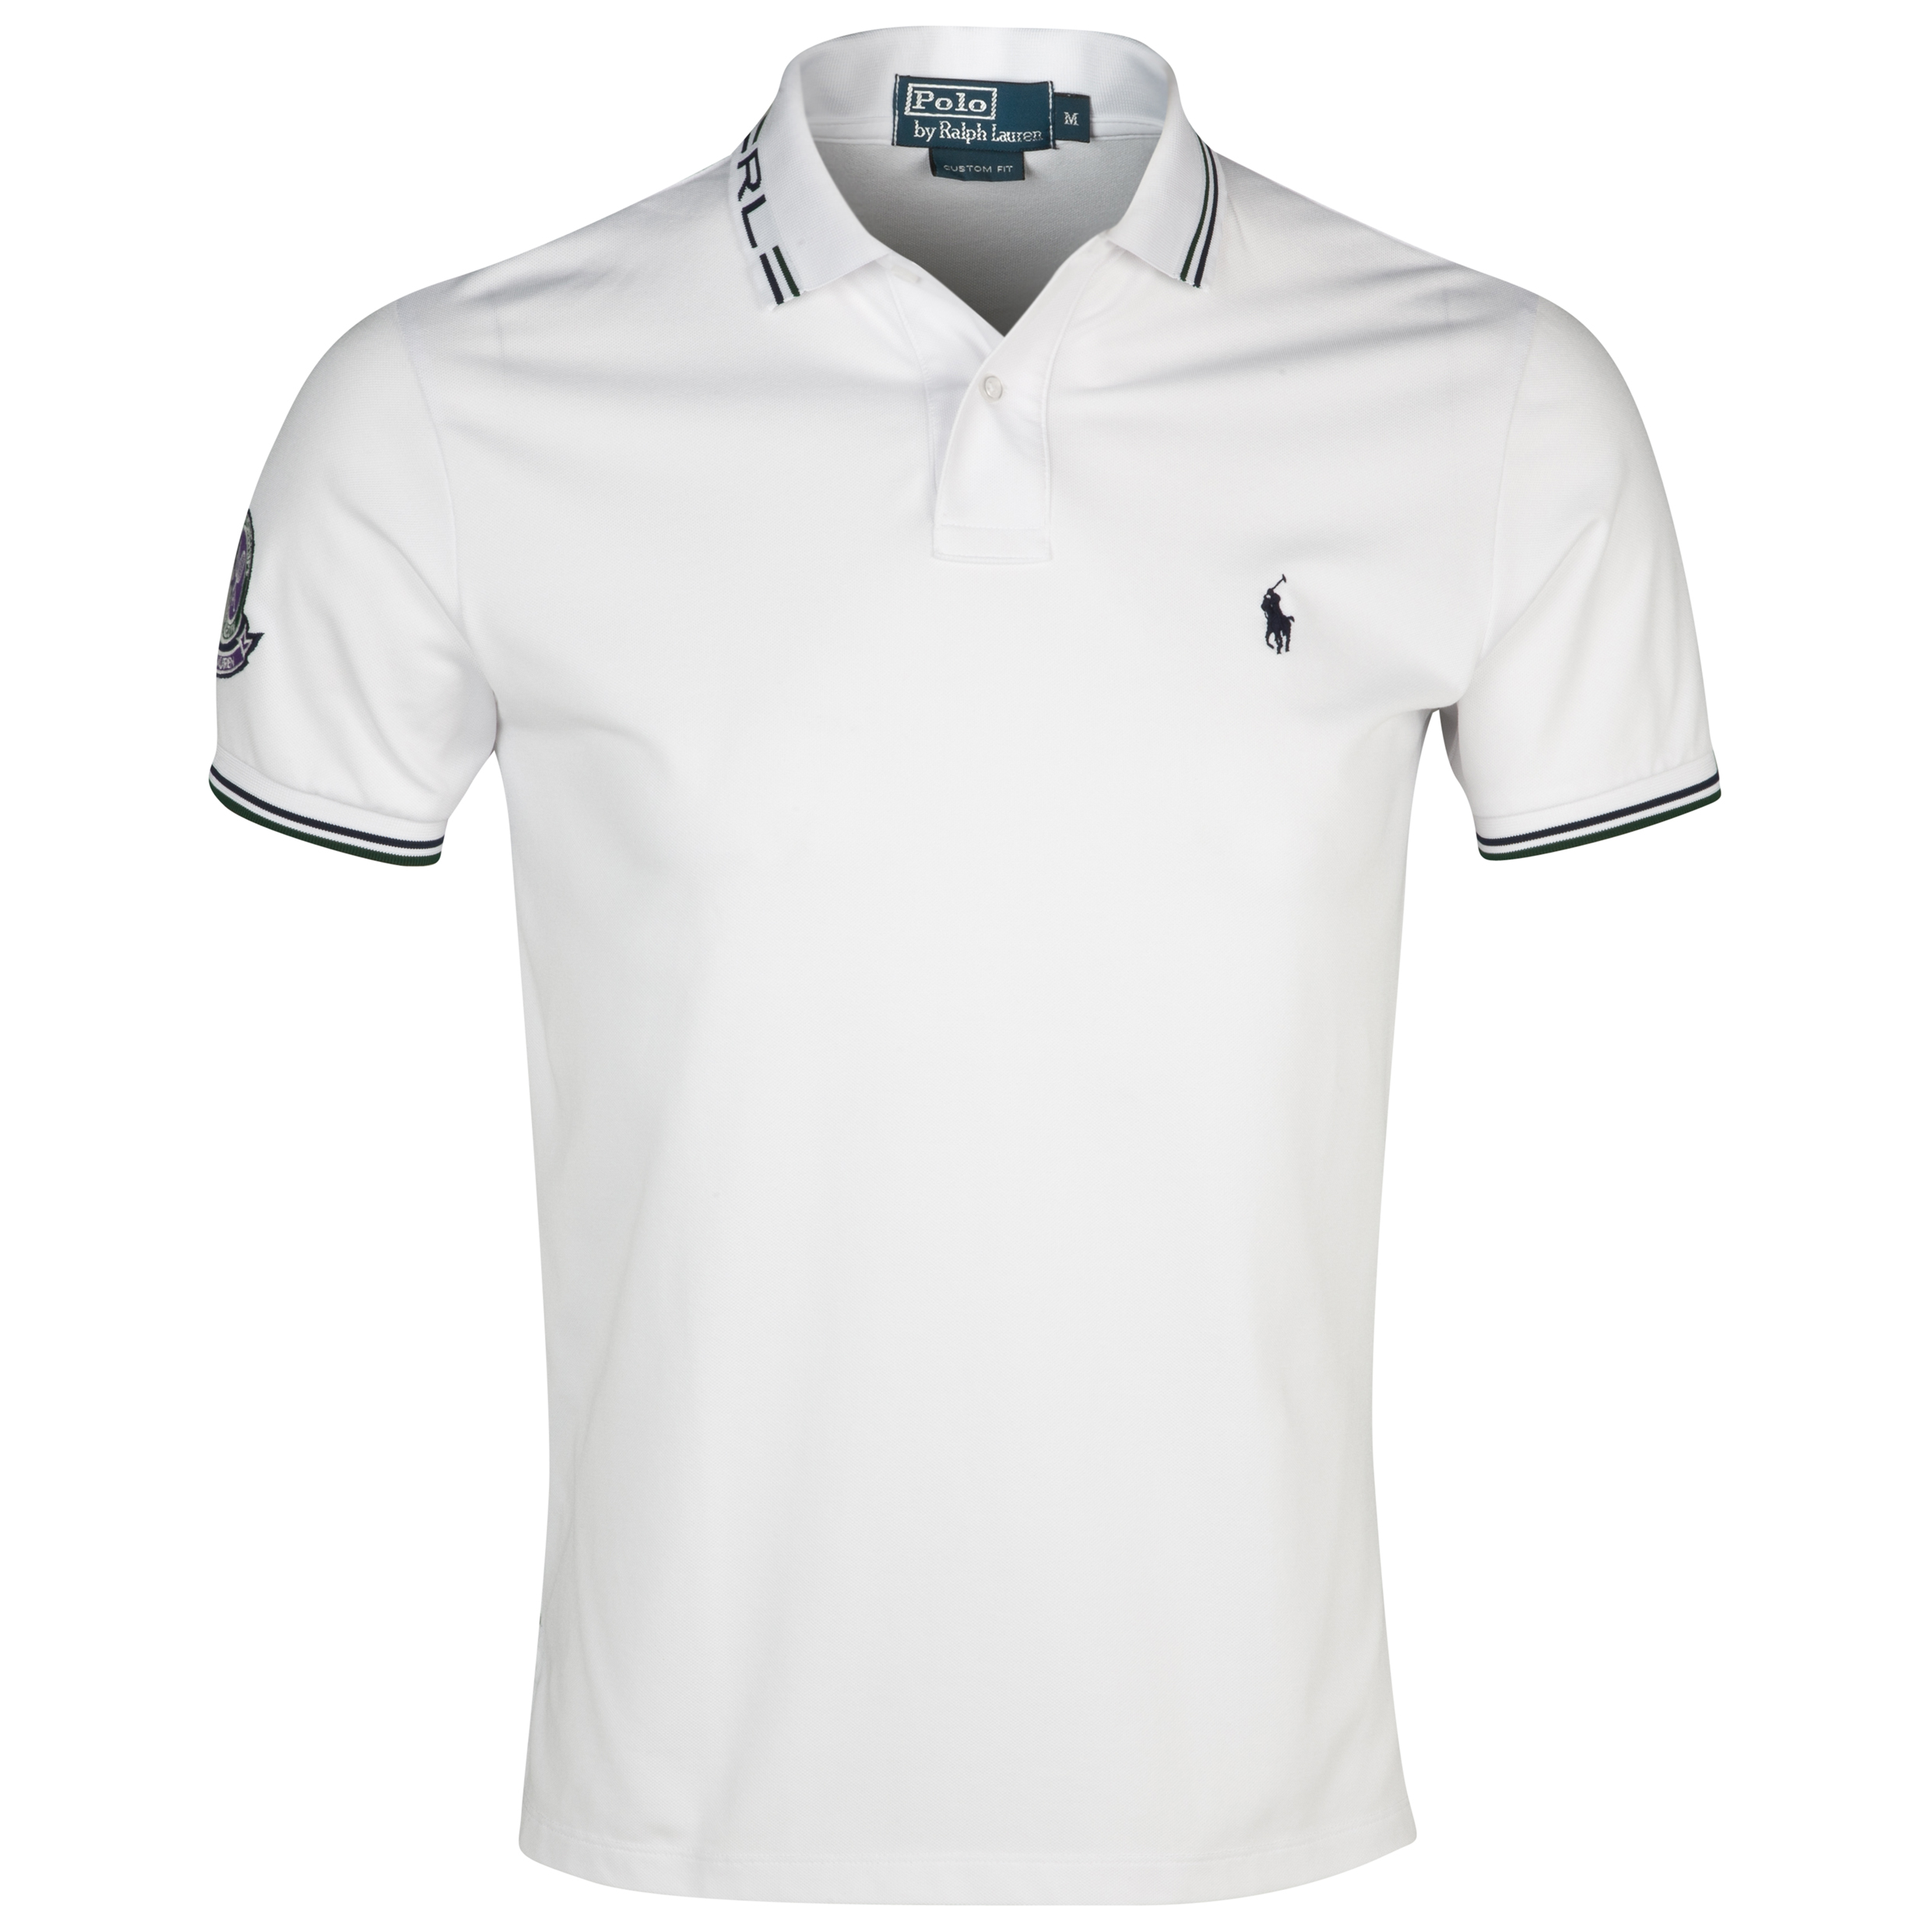 Wimbledon Polo Ralph Lauren Wimbledon Custom Fit Tech Polo White